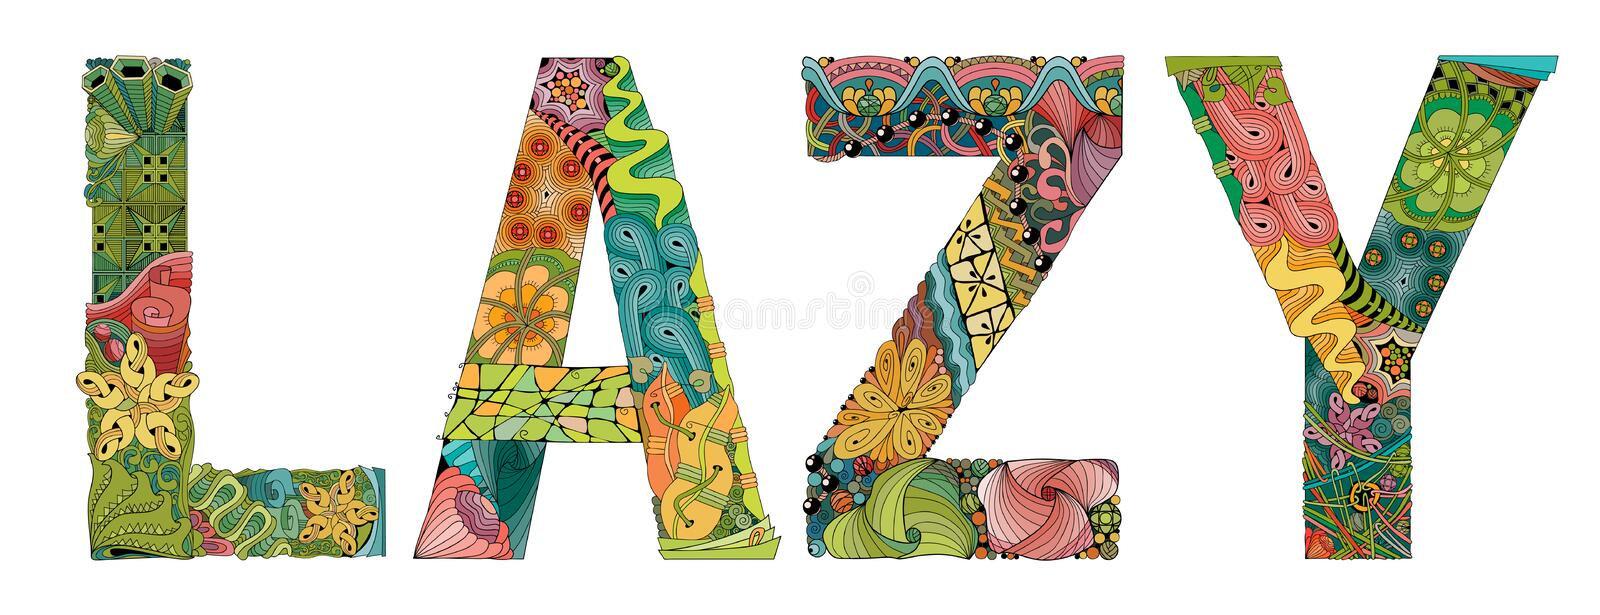 Word LAZY. Vector decorative zentangle object. Hand-painted art design. Hand drawn illustration word LAZY for t-shirt and other decoration royalty free illustration